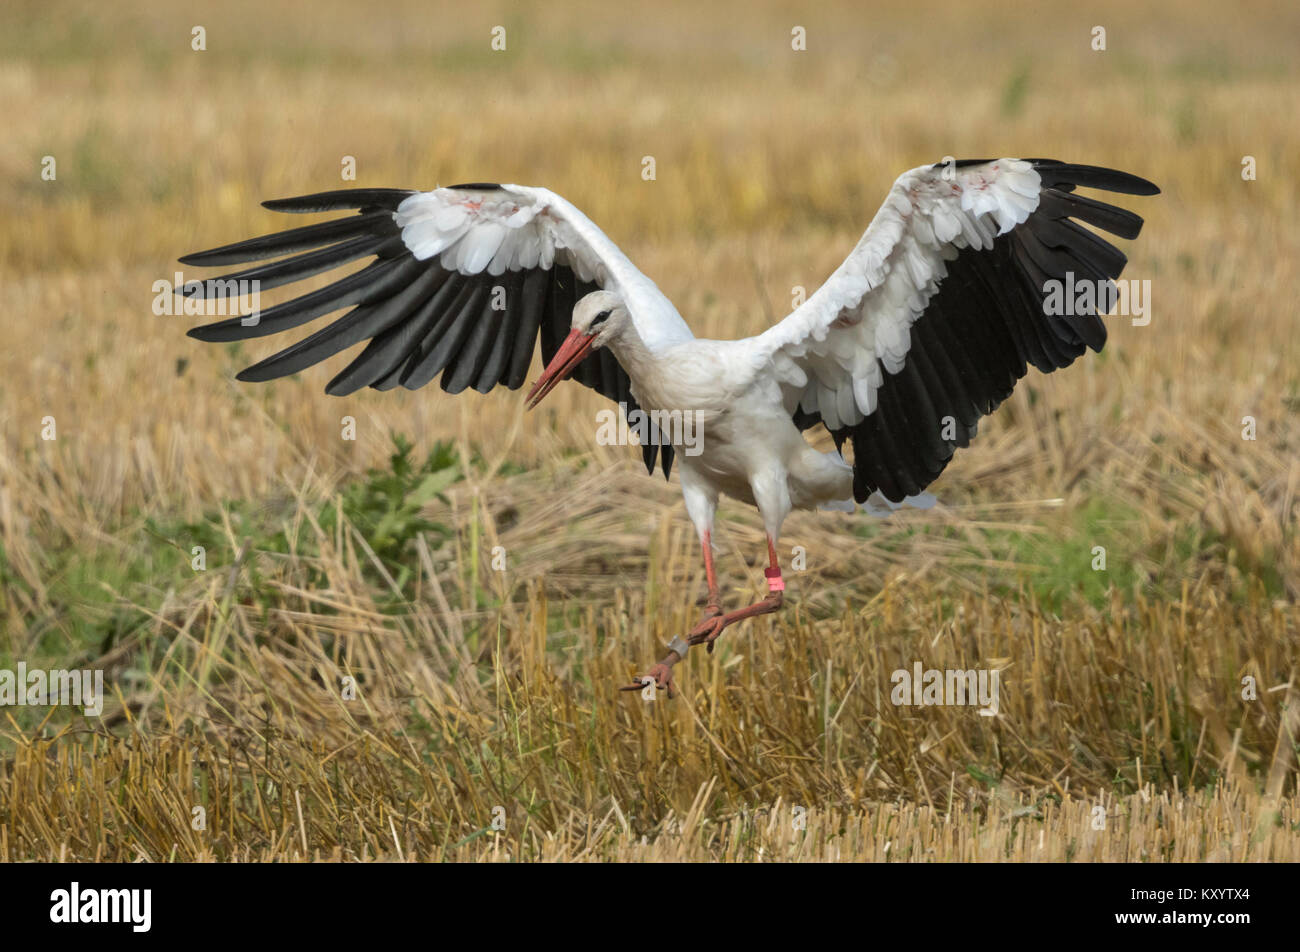 White stork (Ciconia ciconia) in flight over a stubble field - Stock Image